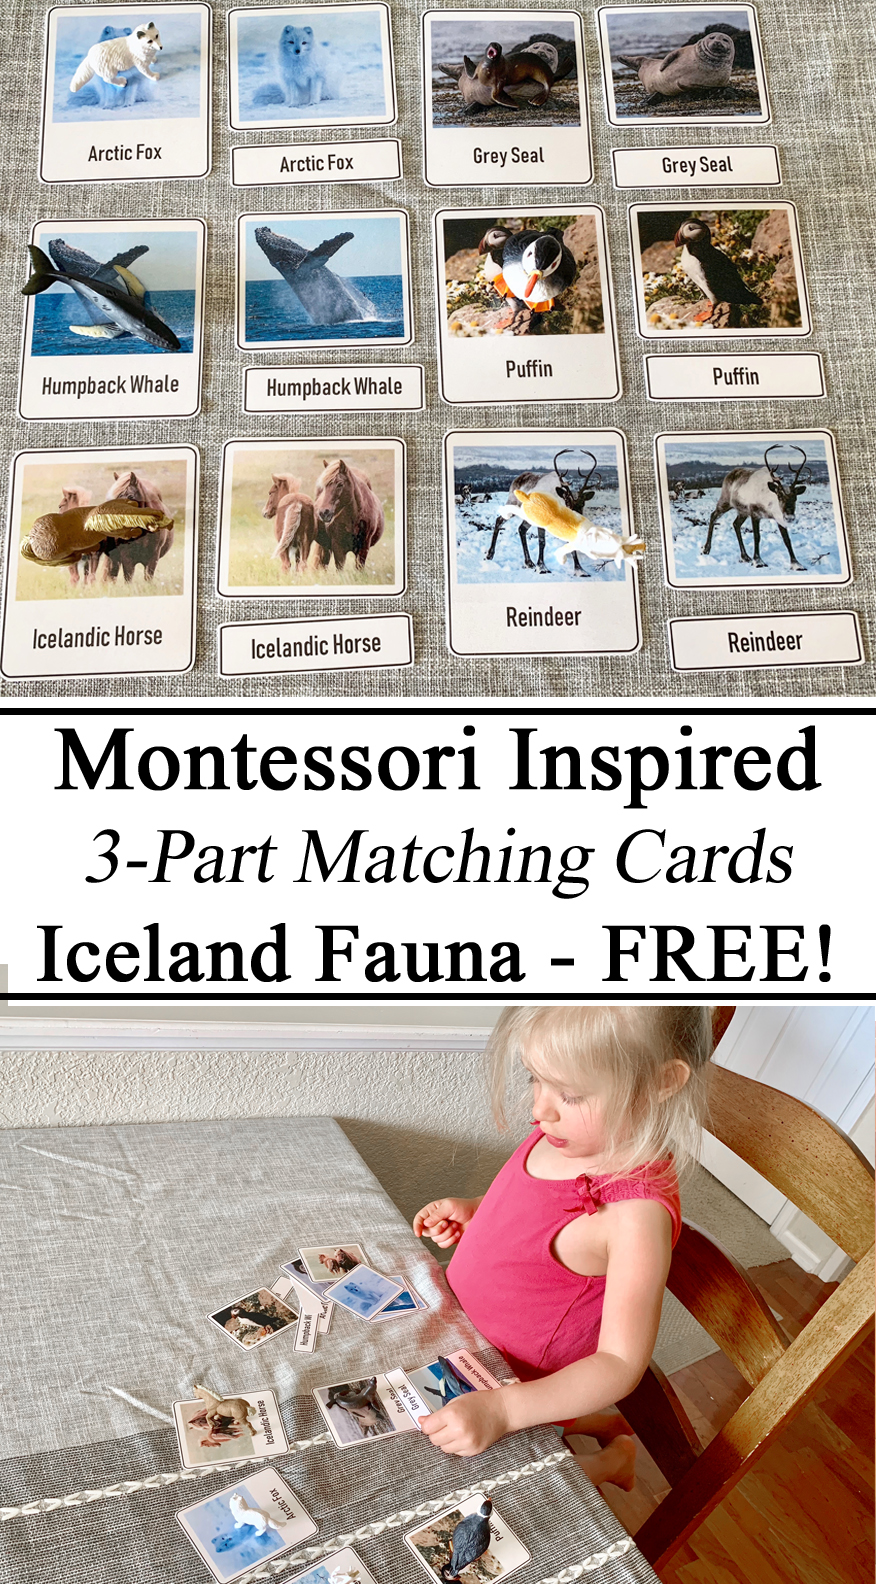 Homeschool, Homeschooling, Montessori, Inspired, Inspiration, 3-Part Cards, Iceland Icelandic Fauna Animals of the World, Miniatures, Figurines, Preschool, PreK, Kindergarten, Educational Resources, Learn to Read, Match, Unschooling, Printables, Early Childhood Education, STEM STEAM Ocean Acquatic Anaimals, Puffin, Humpback Whale, Icelandic Horse, Reindeer, Caribou, Artic Fox, Grey Seal